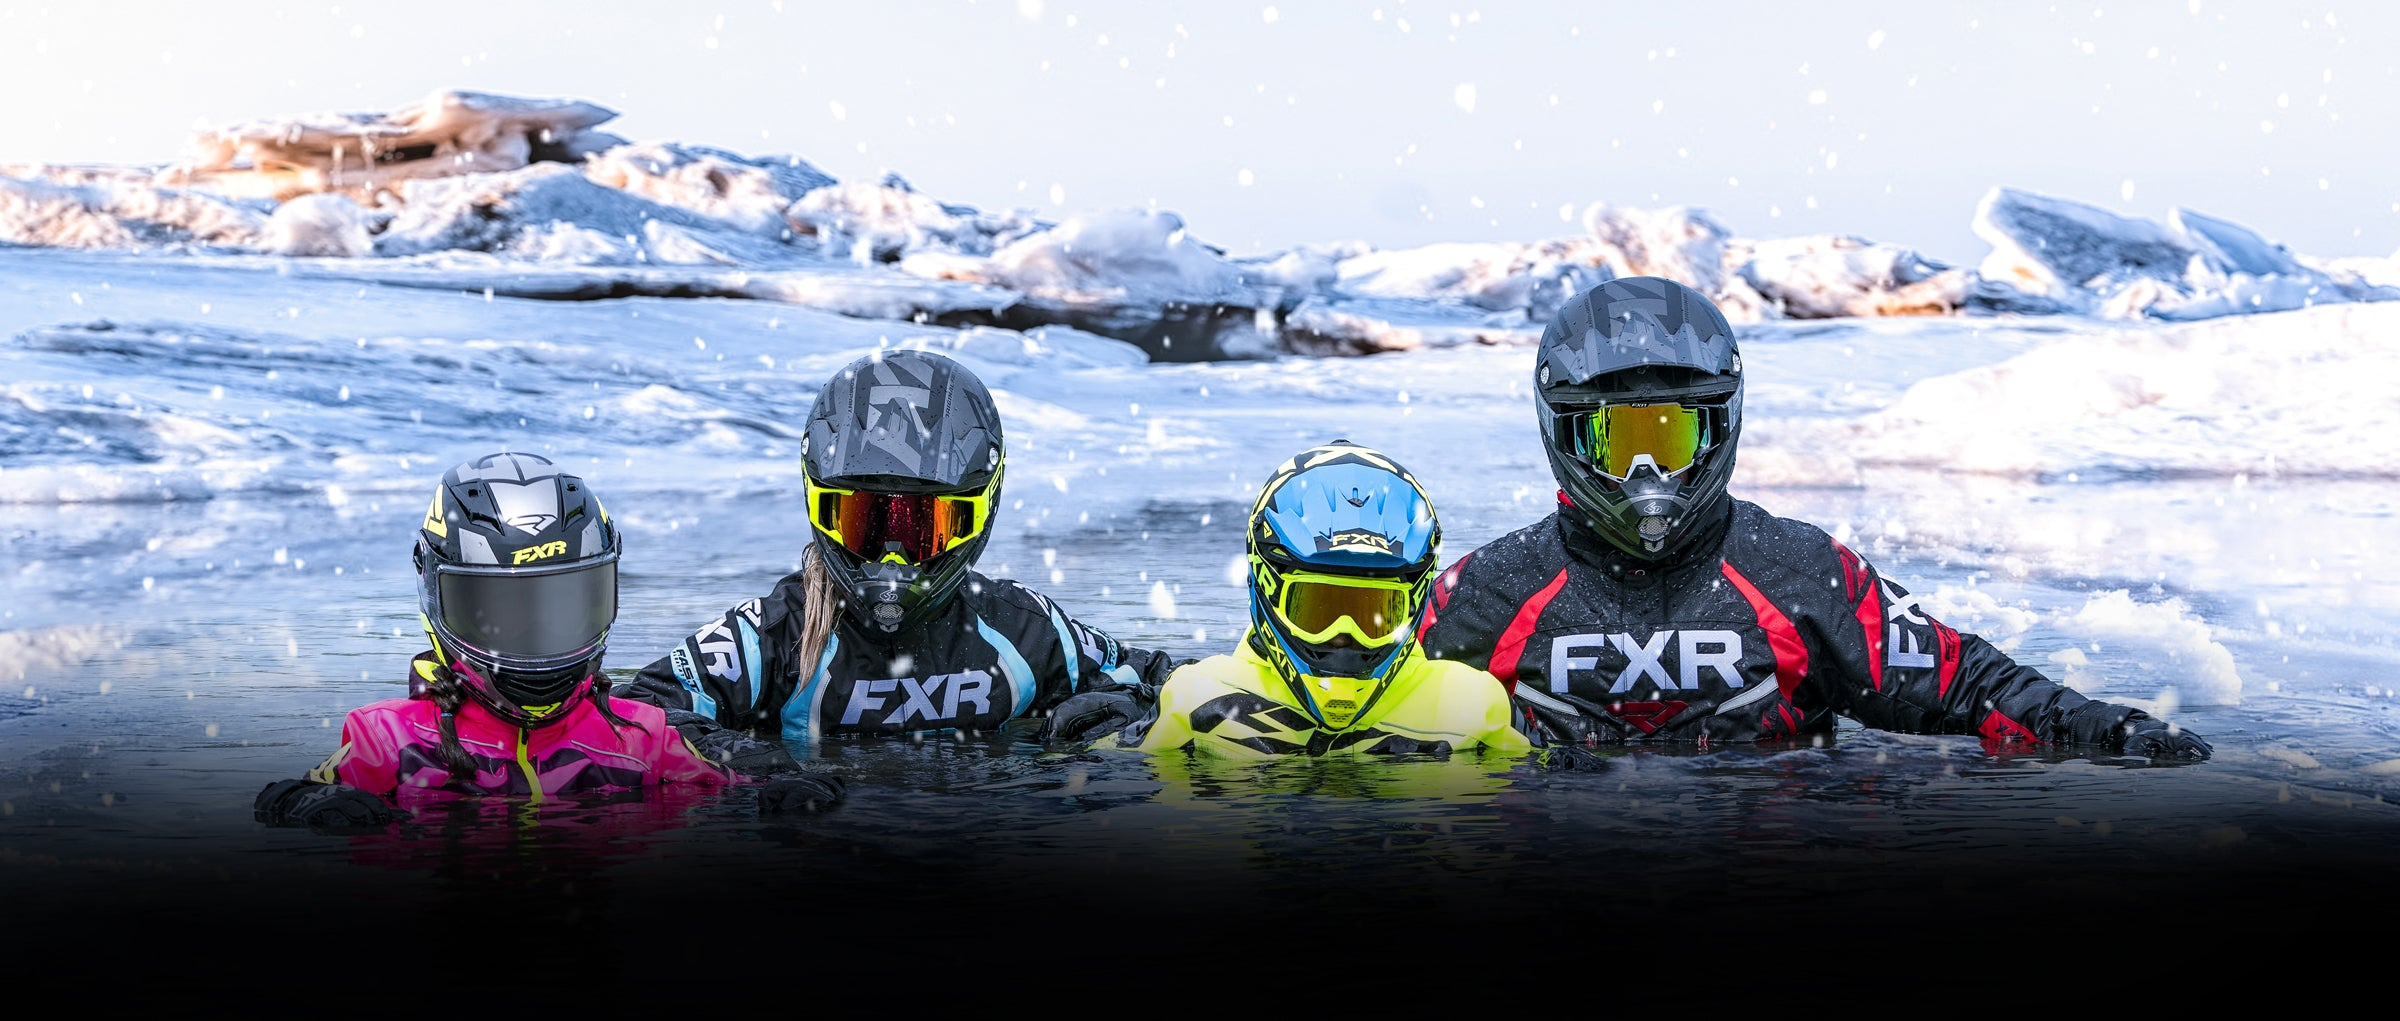 An image of family of four wearing snow jackets with FXR's F.A.S.T Technology